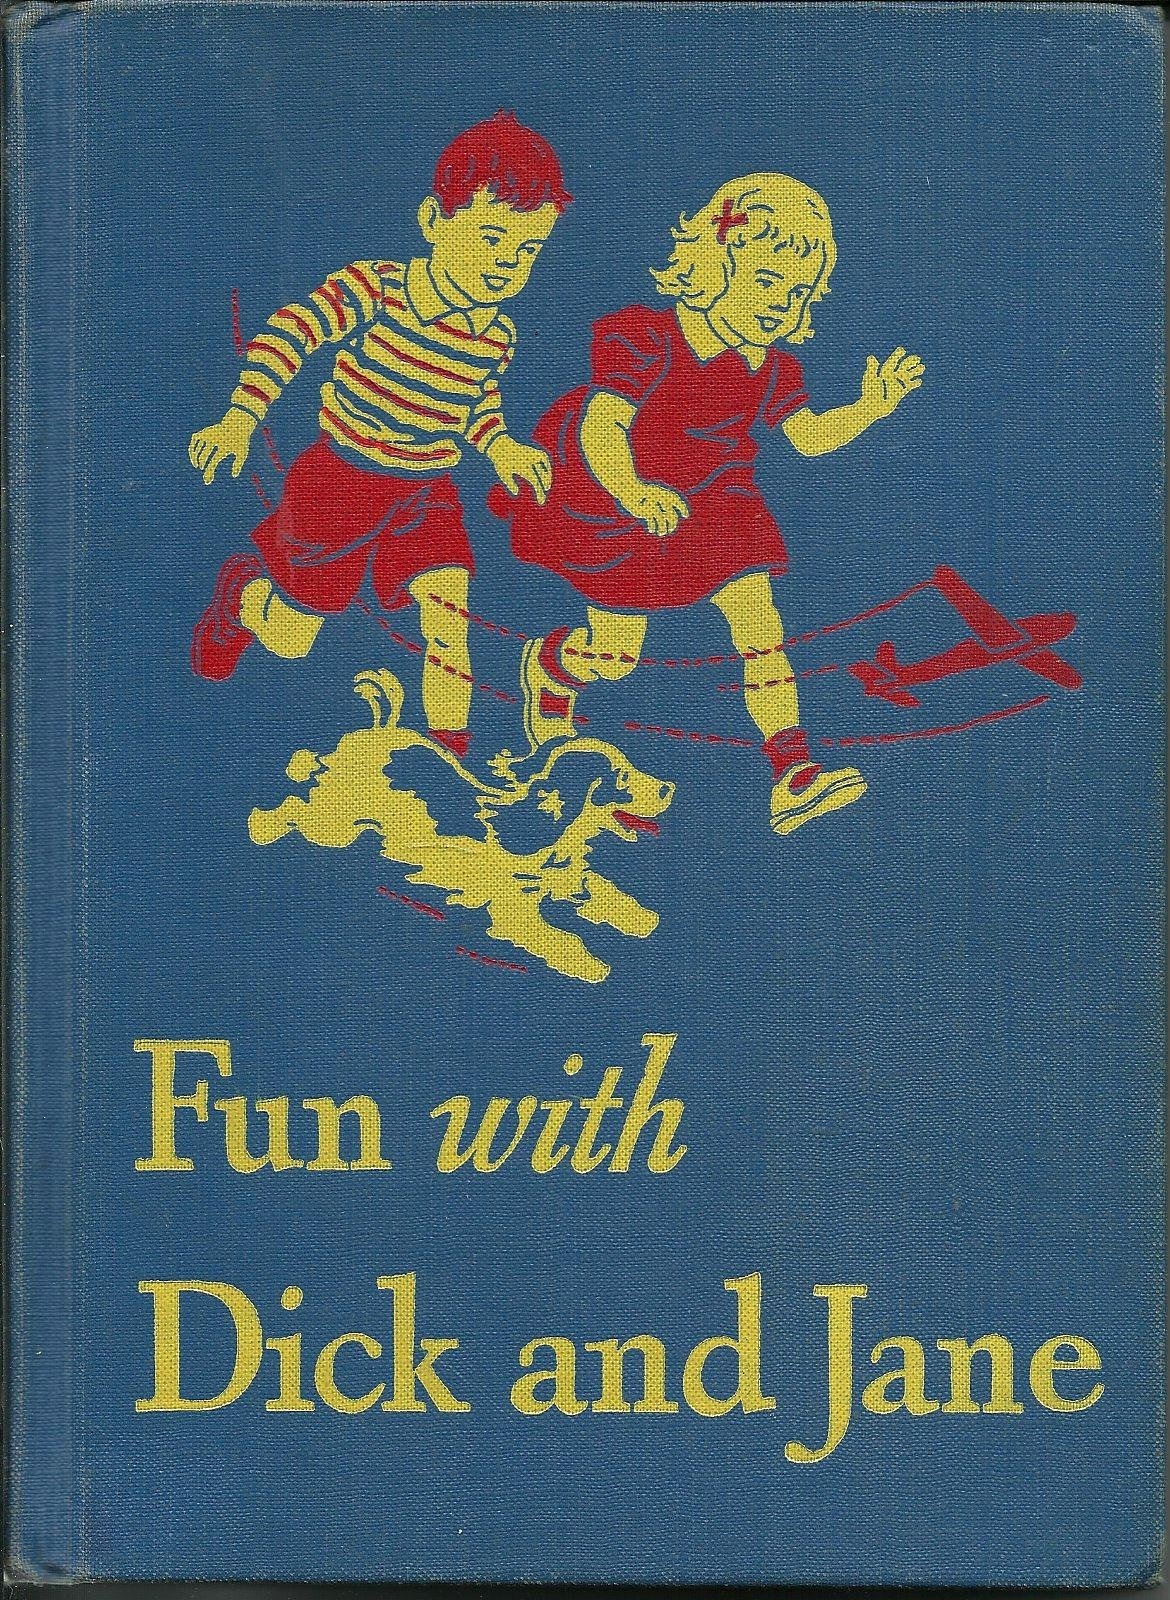 Dick and jane 1960 paperback value